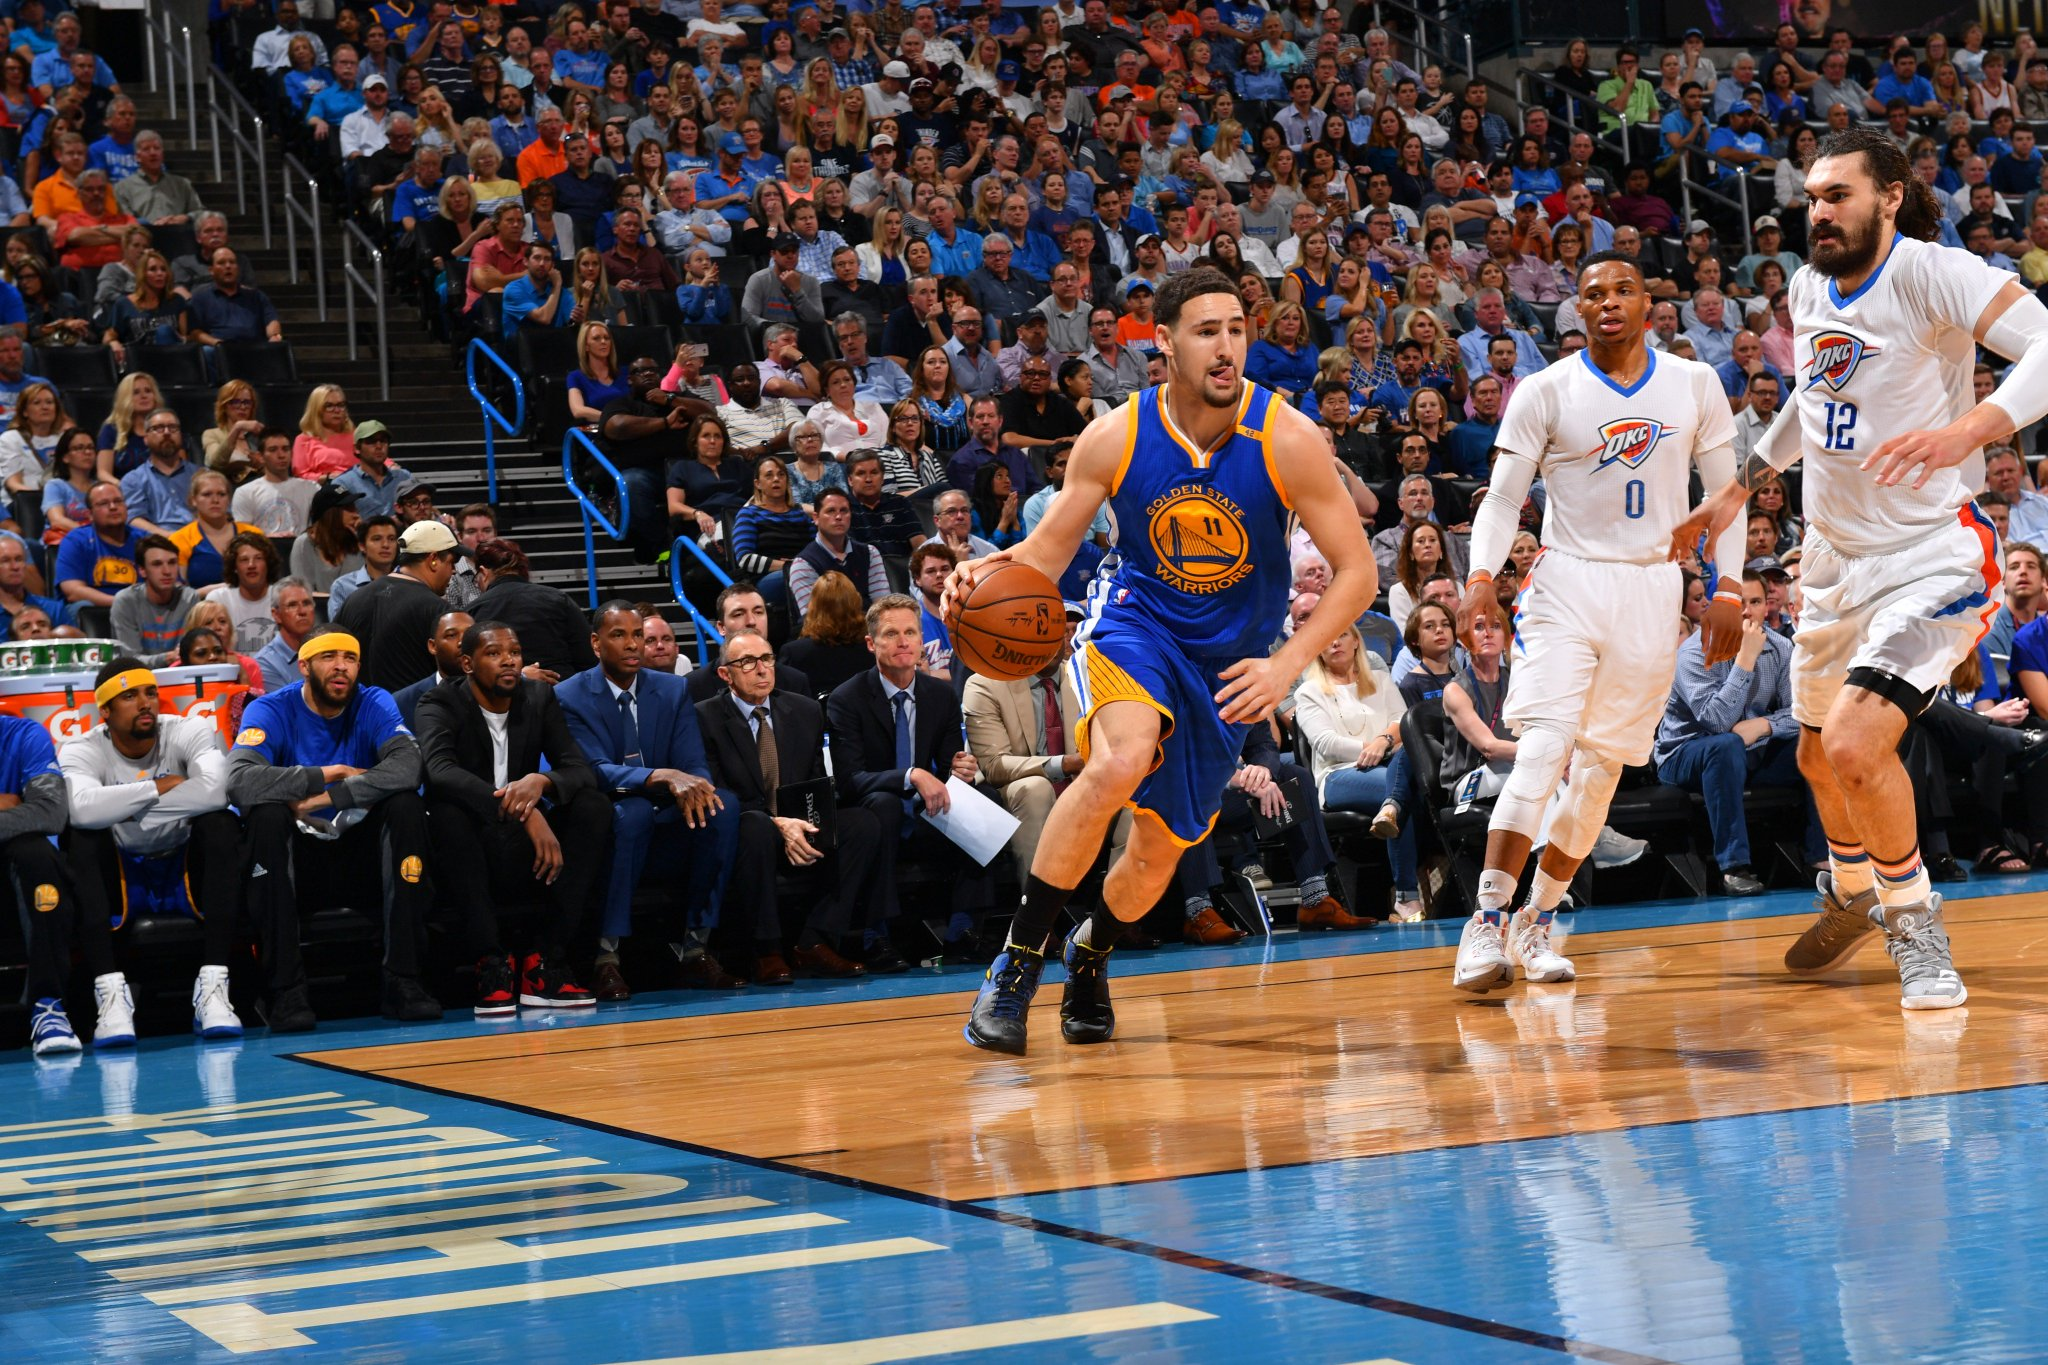 Warriors stepping up in OKC. Splash Brothers have combined for 35.  HALFTIME: @warriors: 59 @okcthunder: 39 https://t.co/zAXnisKzBh